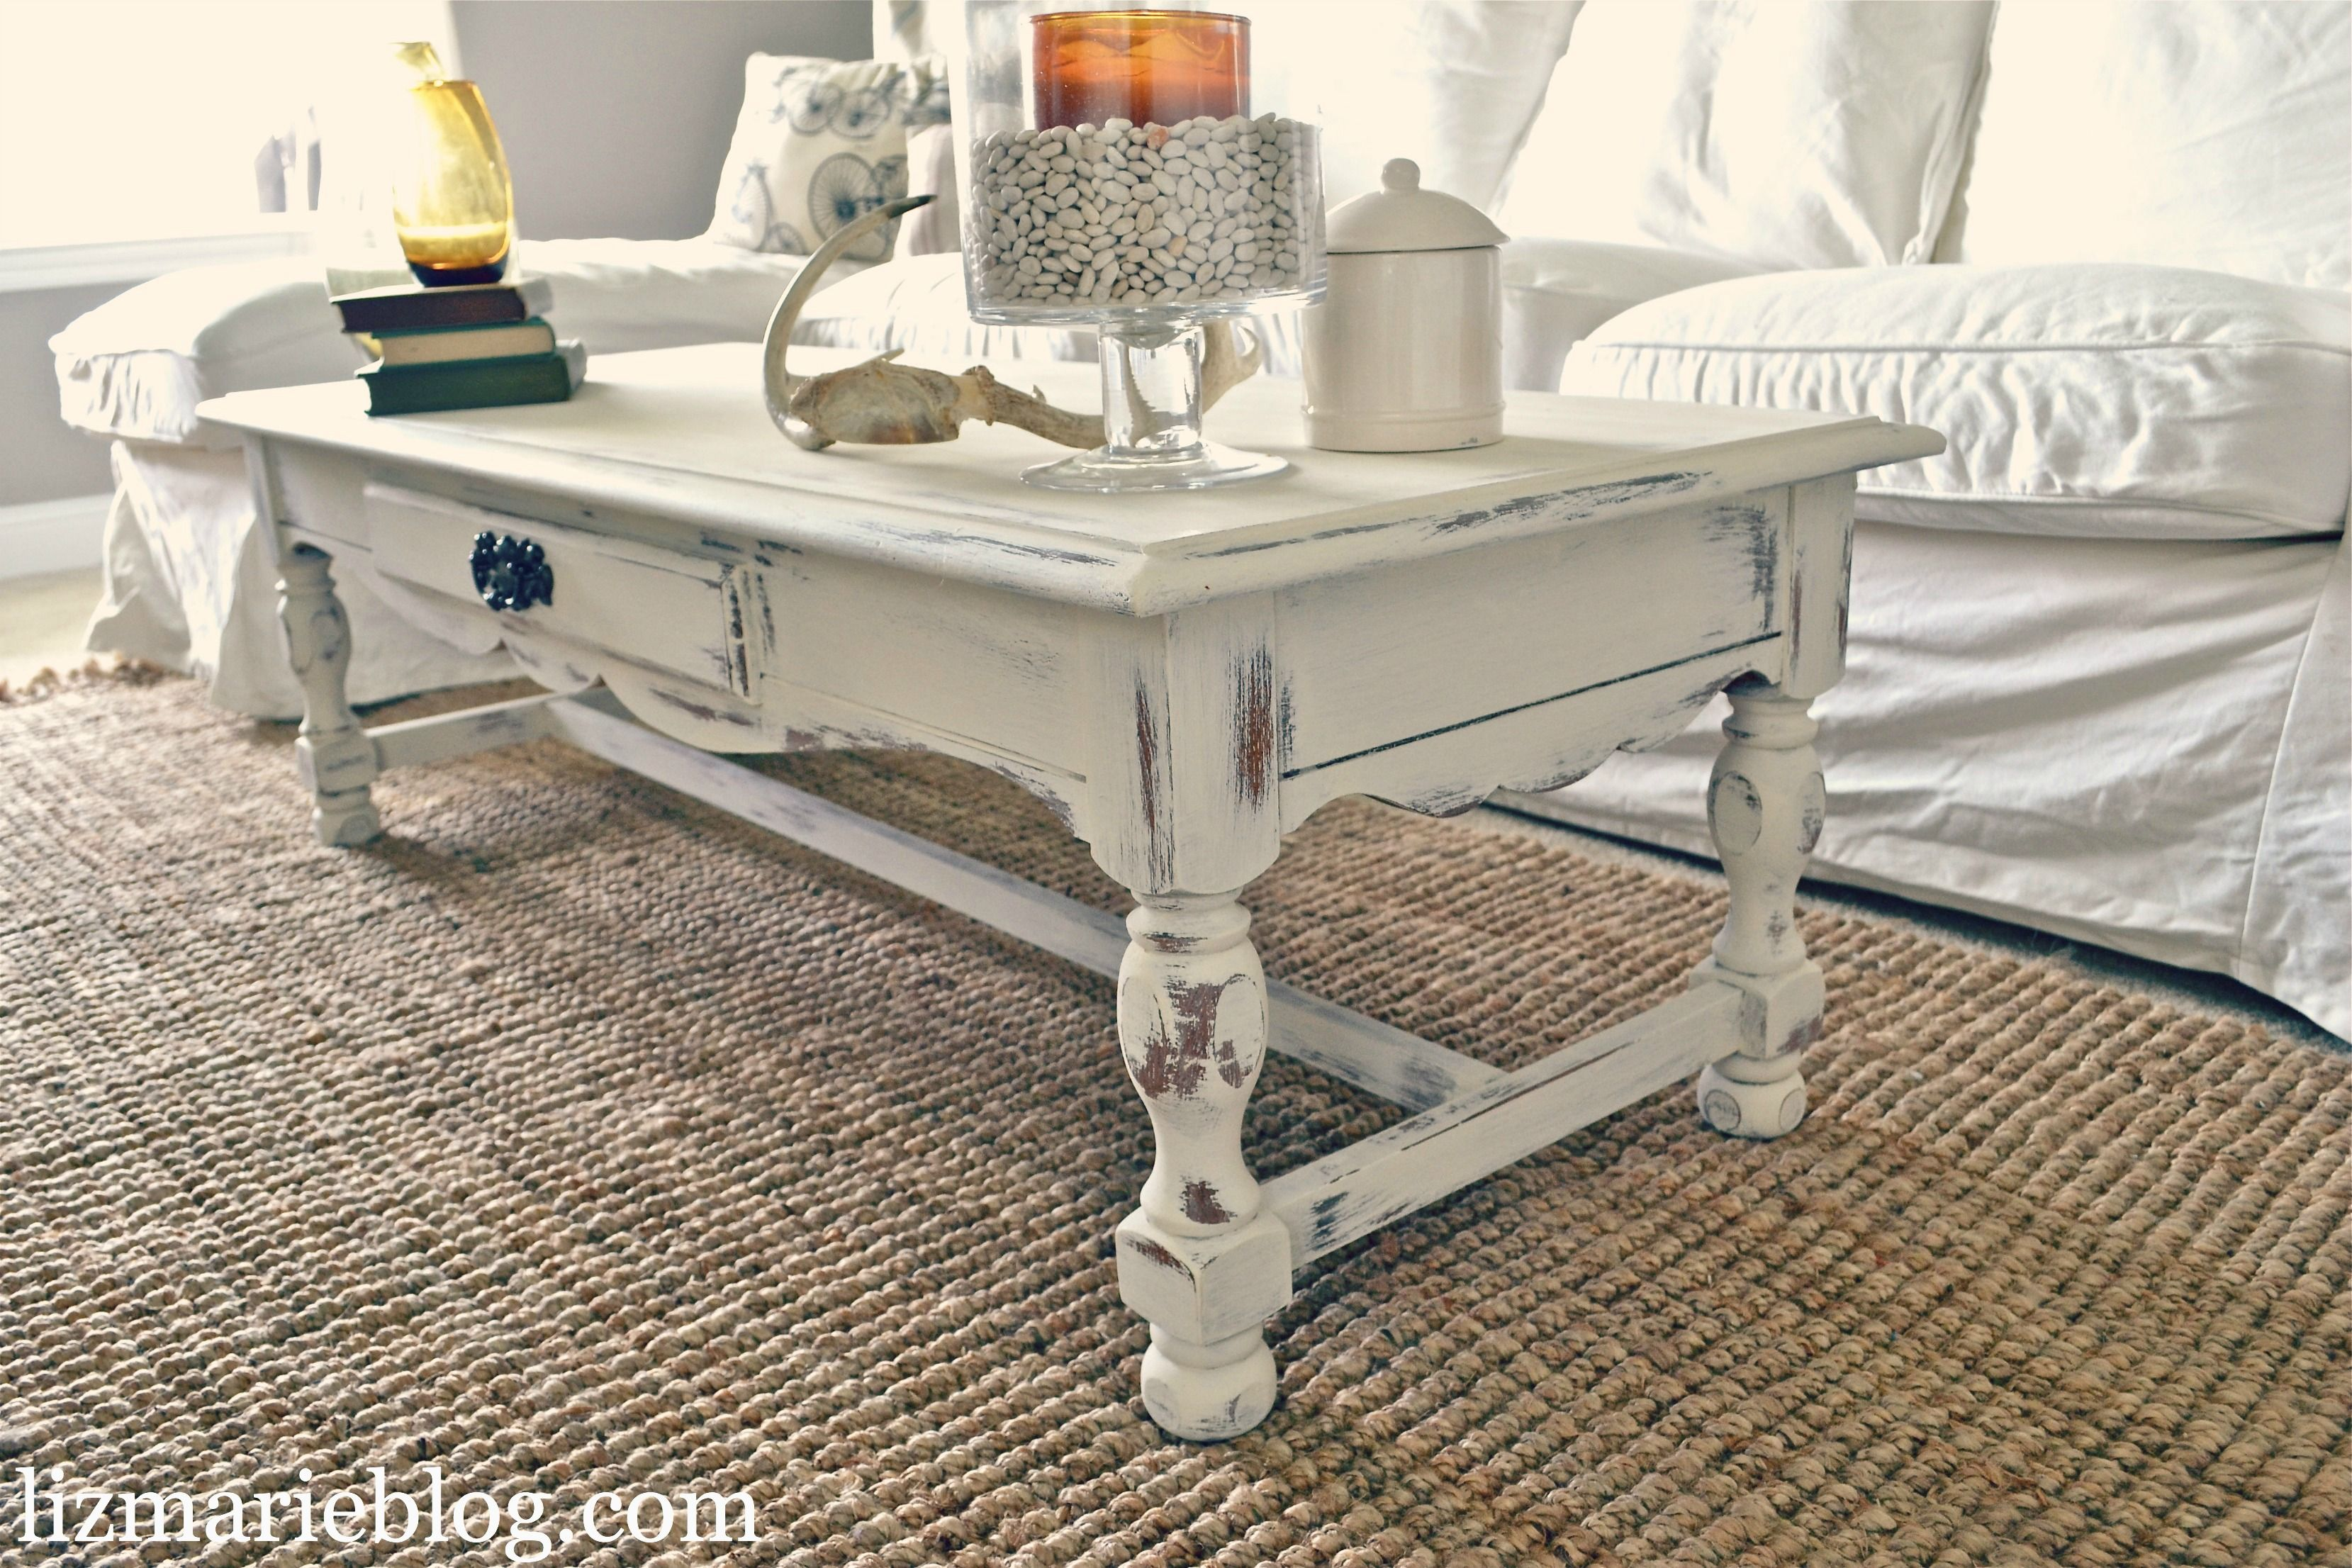 Shabby Little Coffee Table Shabby Chic Decor Living Room Shabby Chic Room Shabby Chic Coffee Table